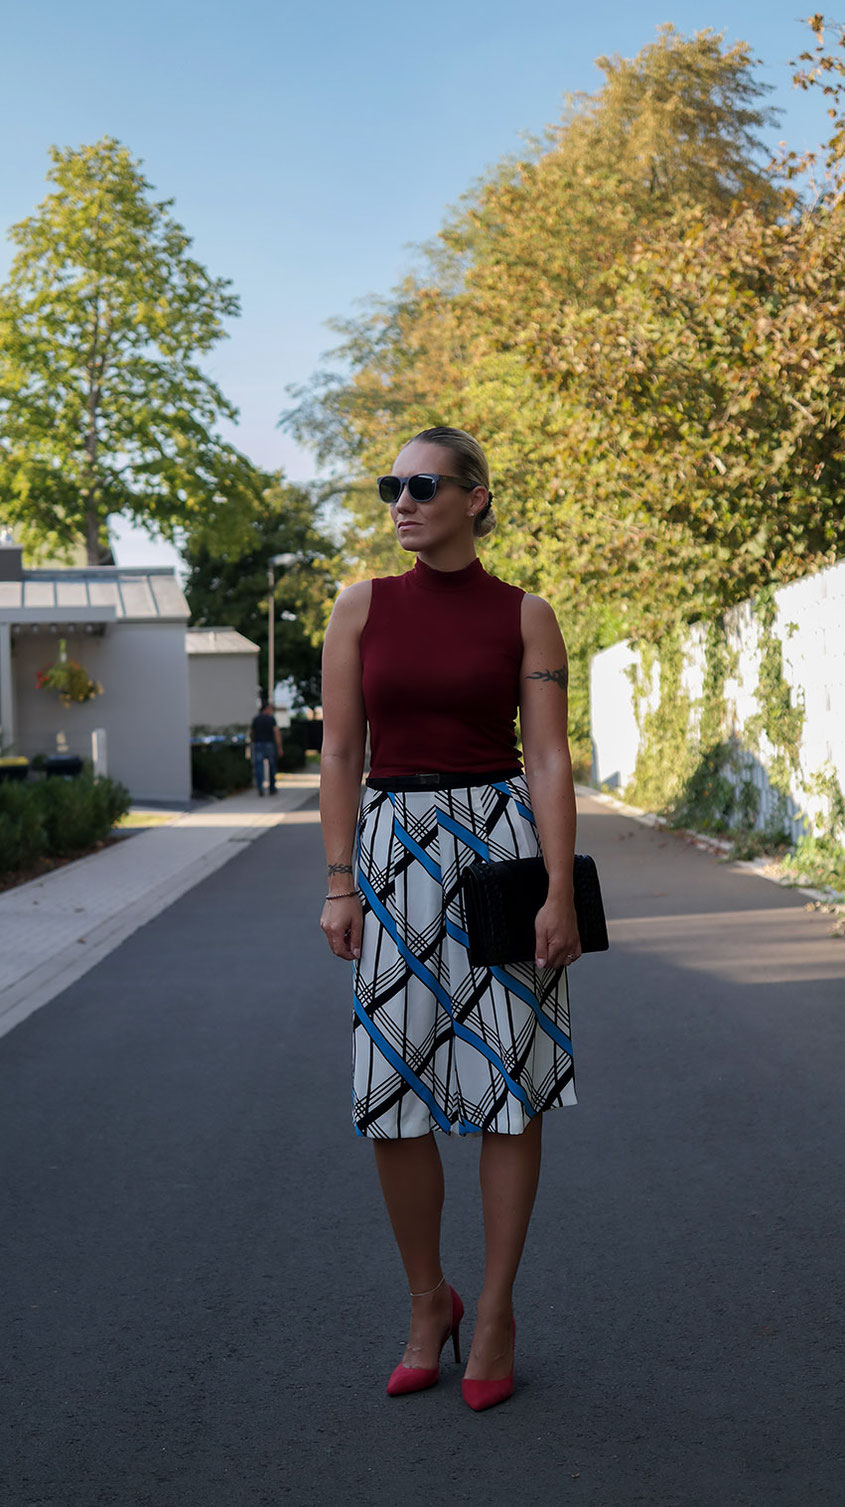 Outfit River Island Summer Culottes X Crop Top from Ax Paris | Braided Clutch from Asos | hot-port.de | 30+ Lifestyle & Trends Blog